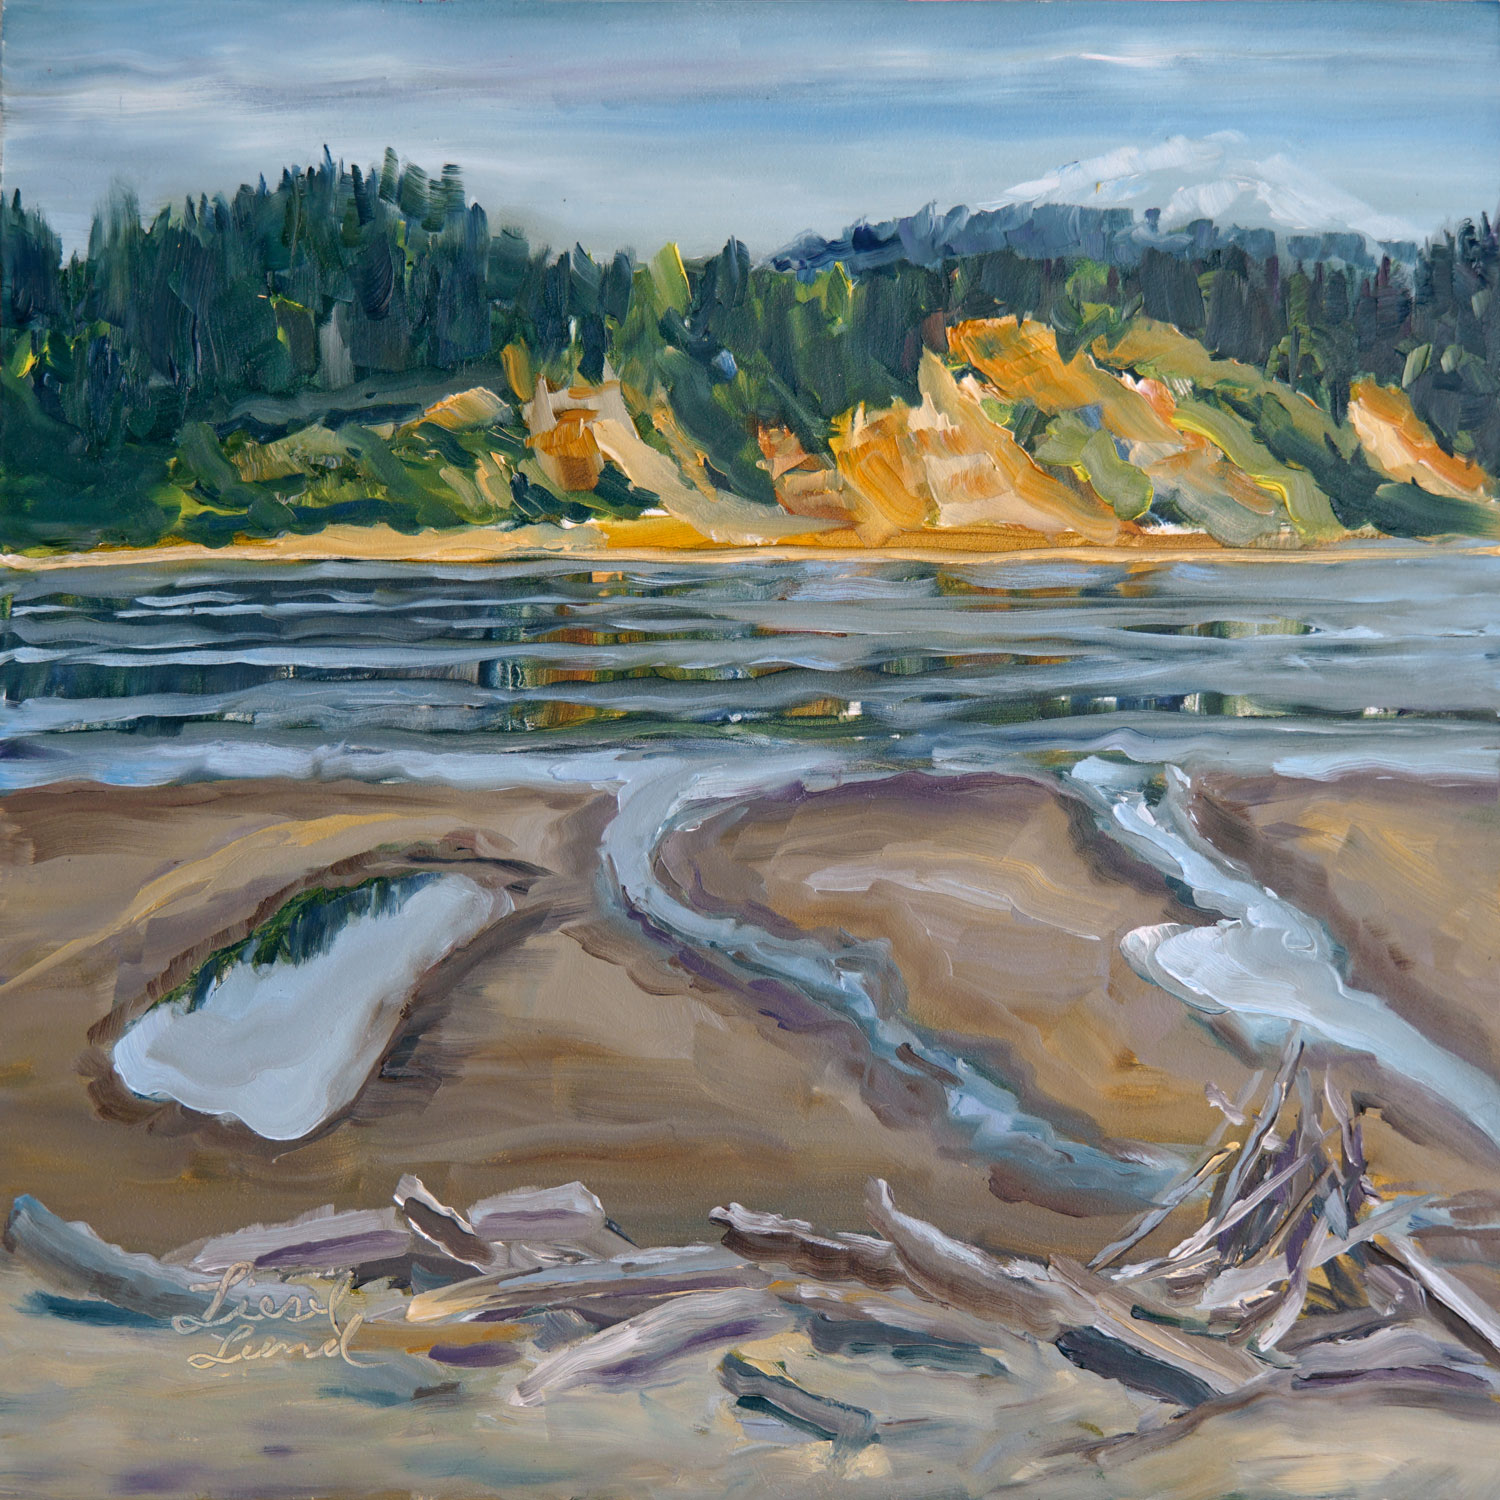 Liesel-Lund__Double-Bluff-Beach,-low-tide-1.jpg